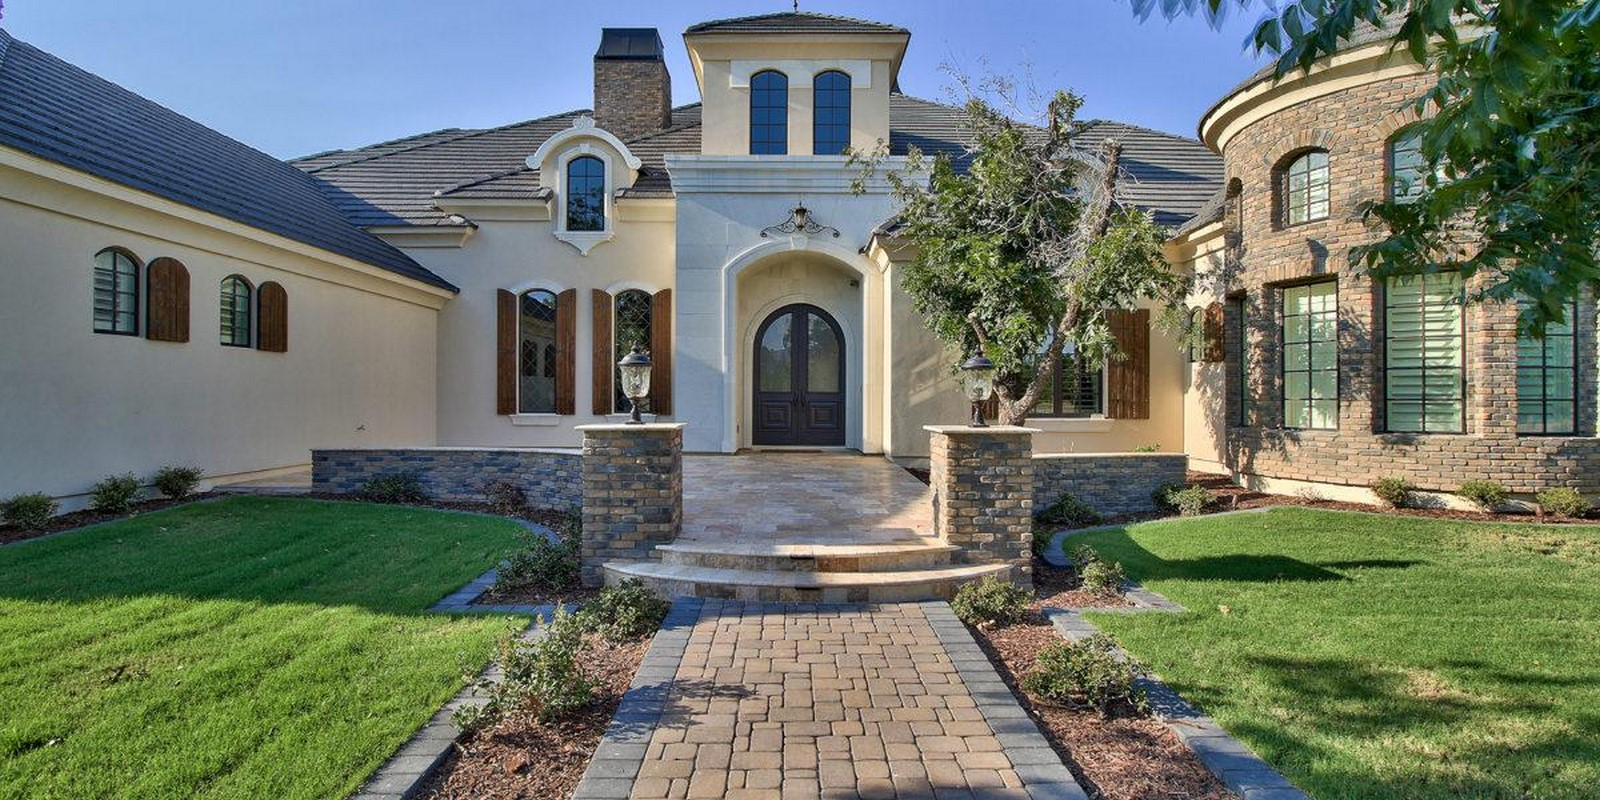 Architects in Mesa - Top 15 Architects in Mesa Sheet8